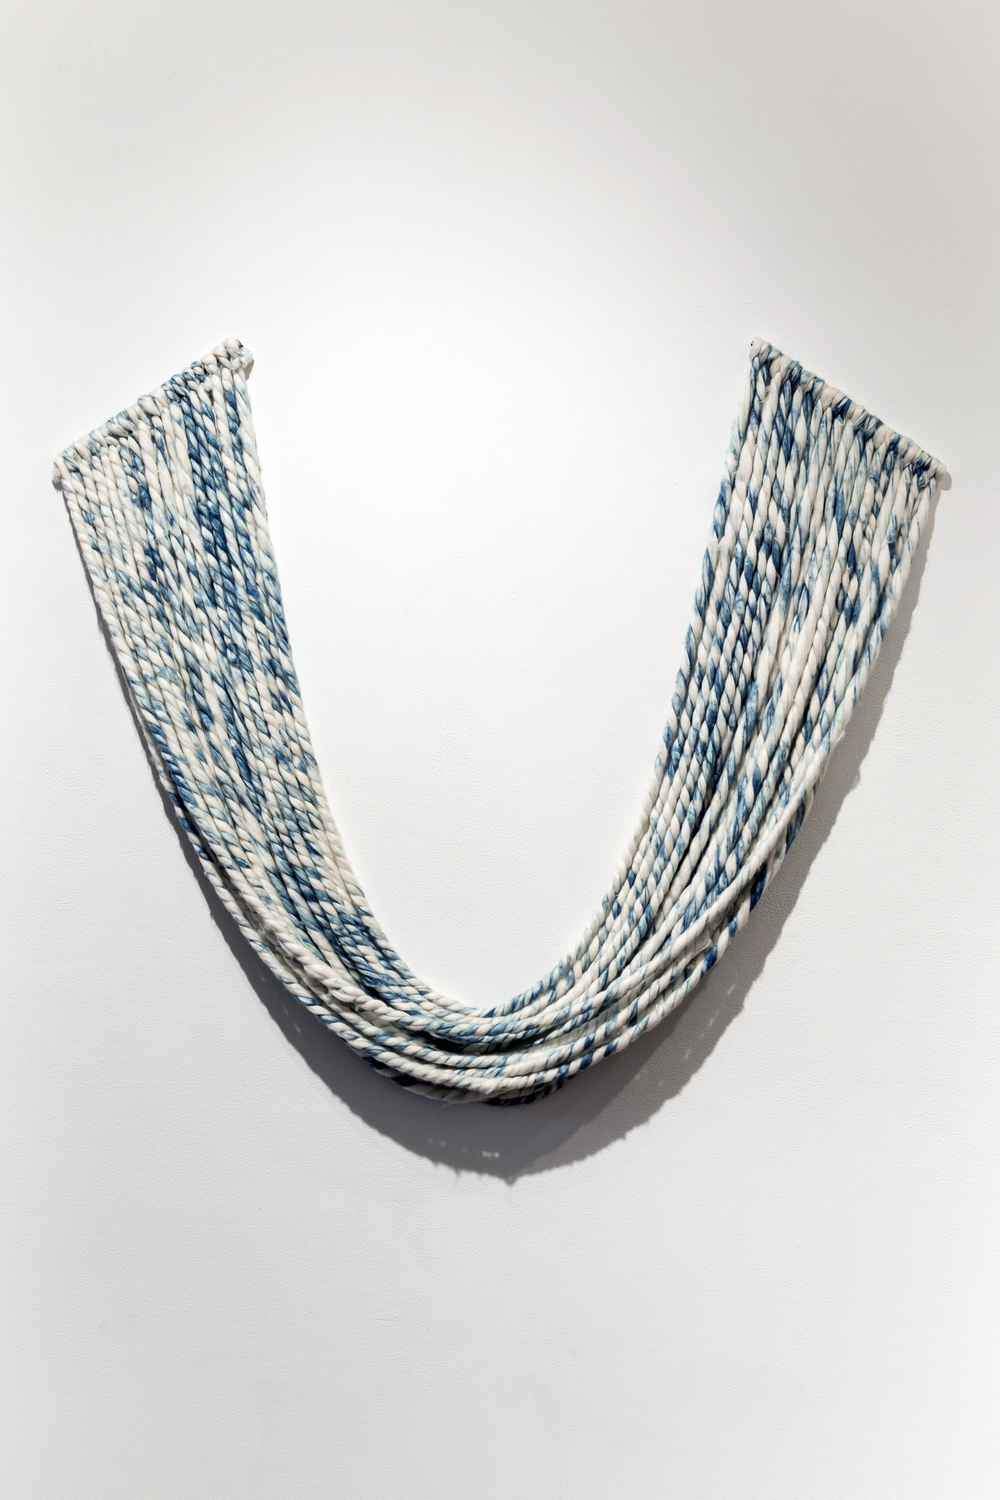 Indigo Cotton Roving, 2014